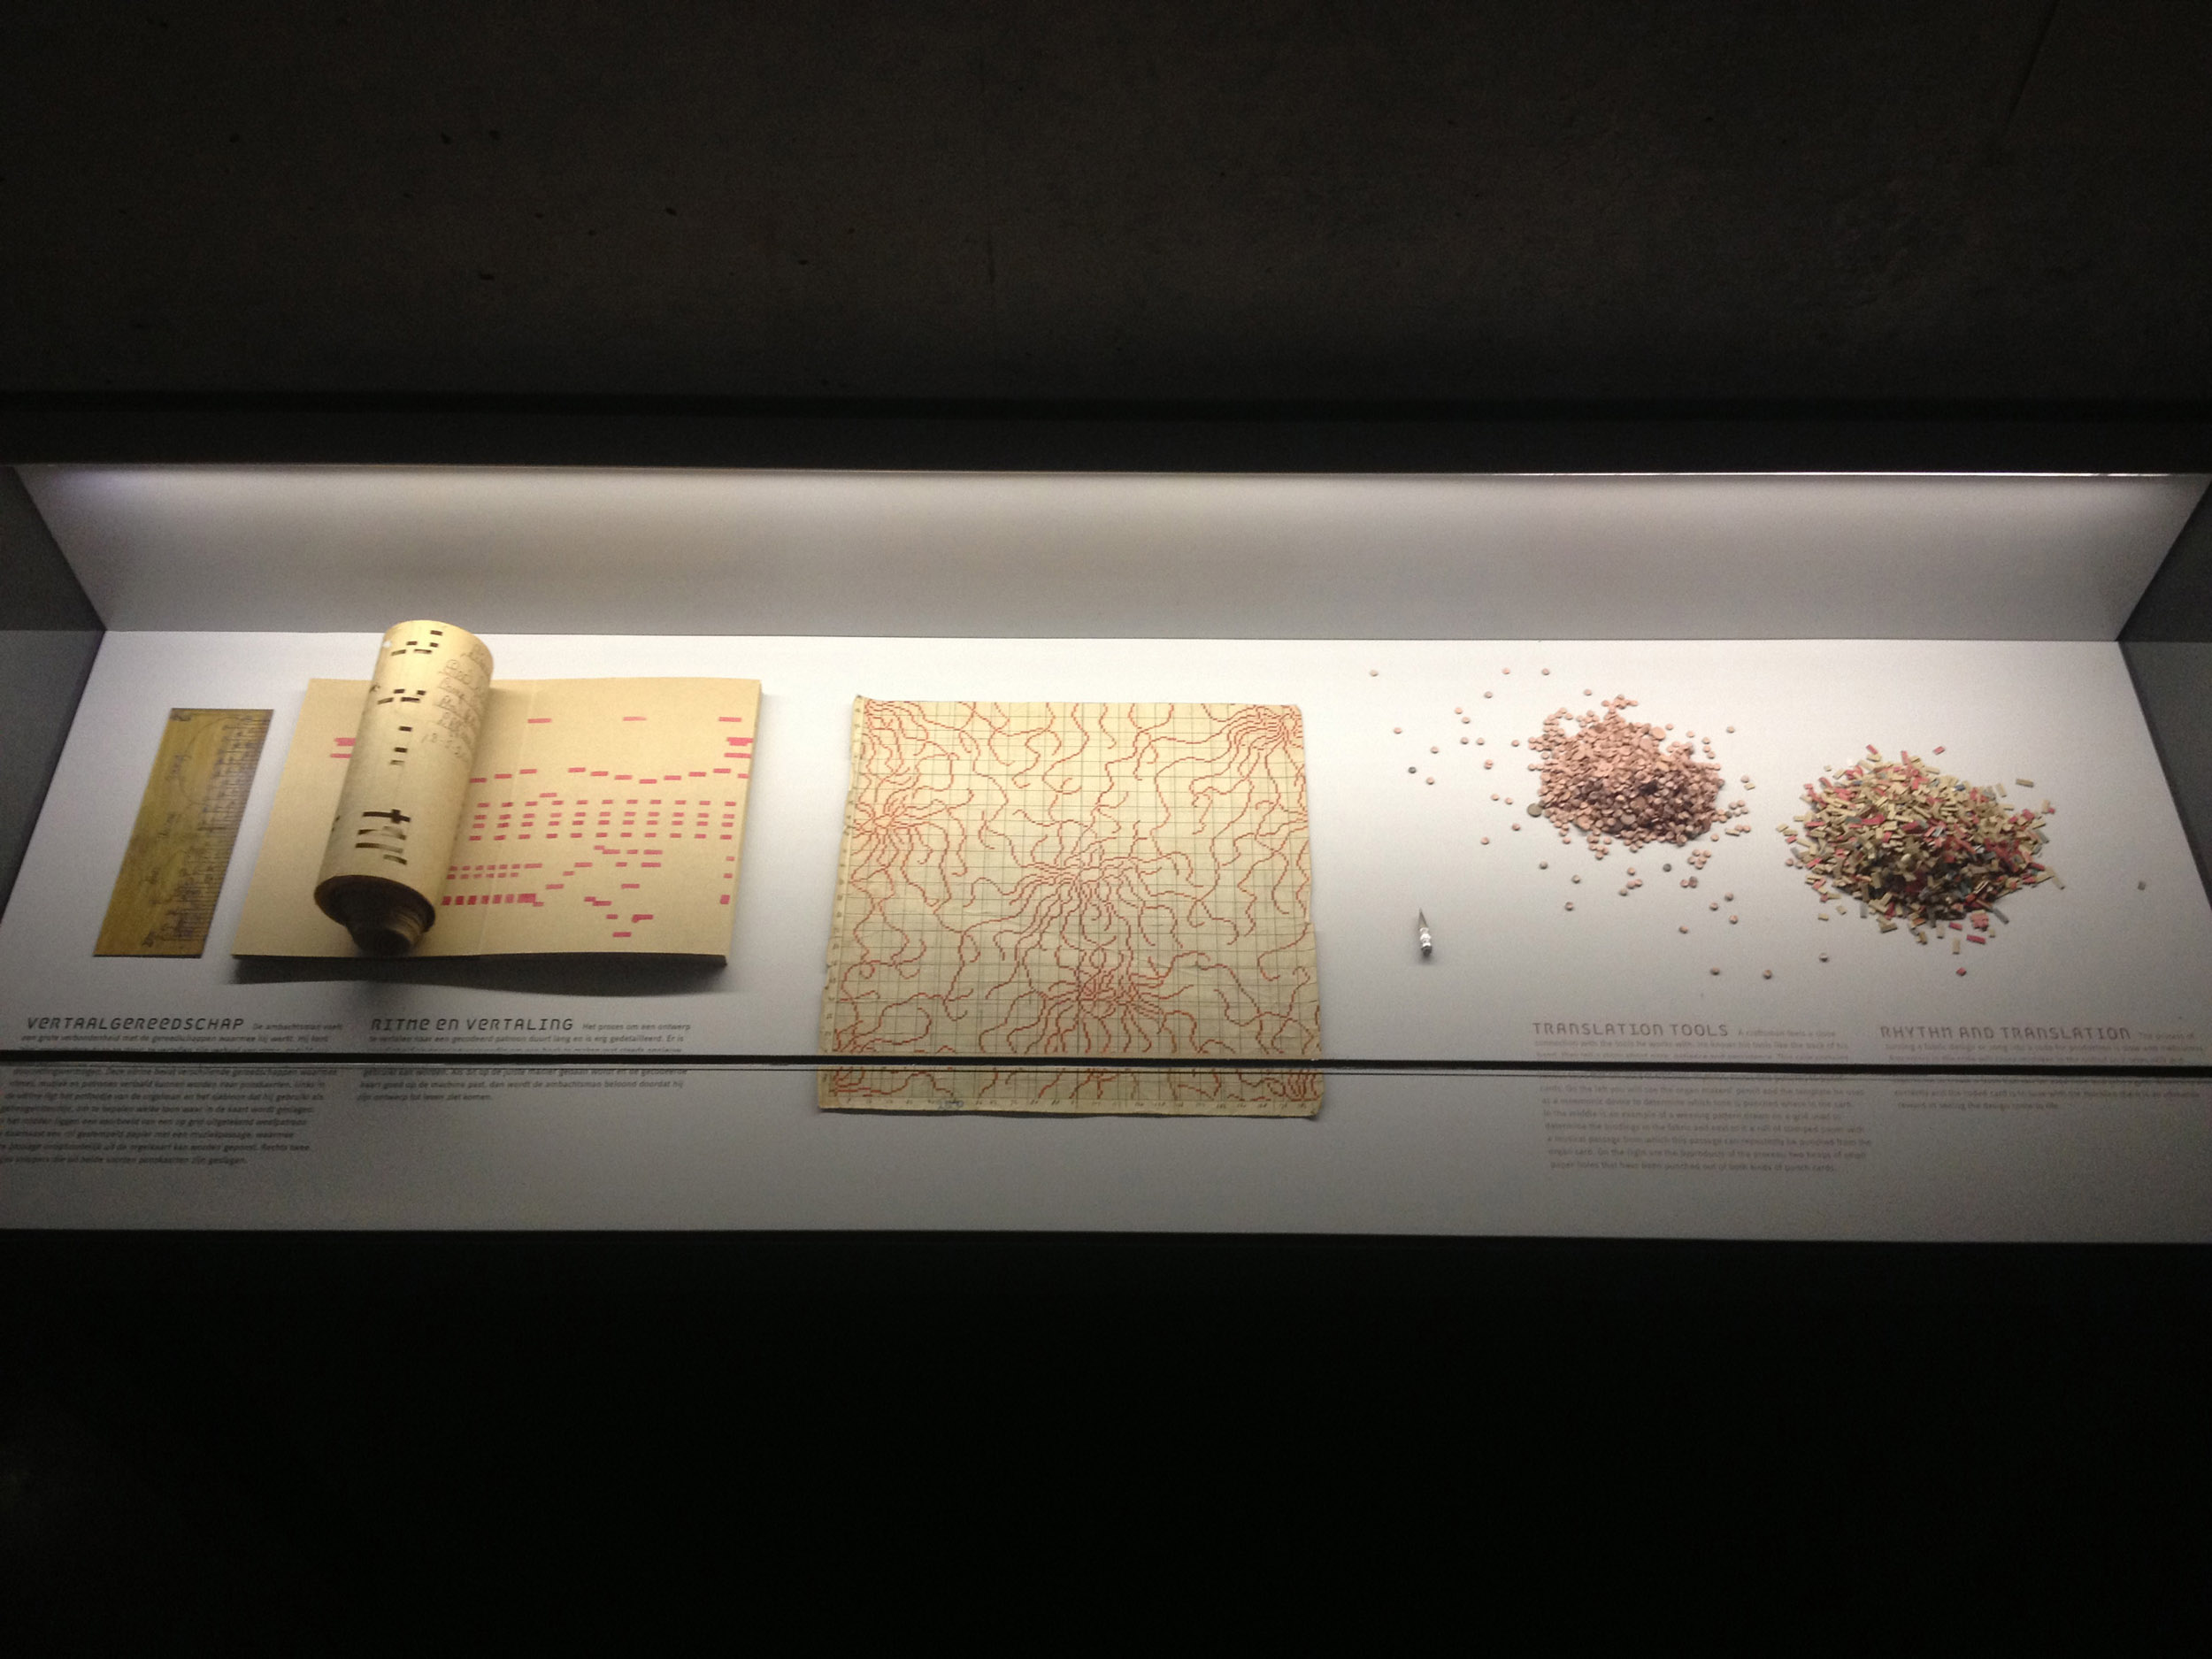 A vitrine containing artefacts of the project, including punching tools